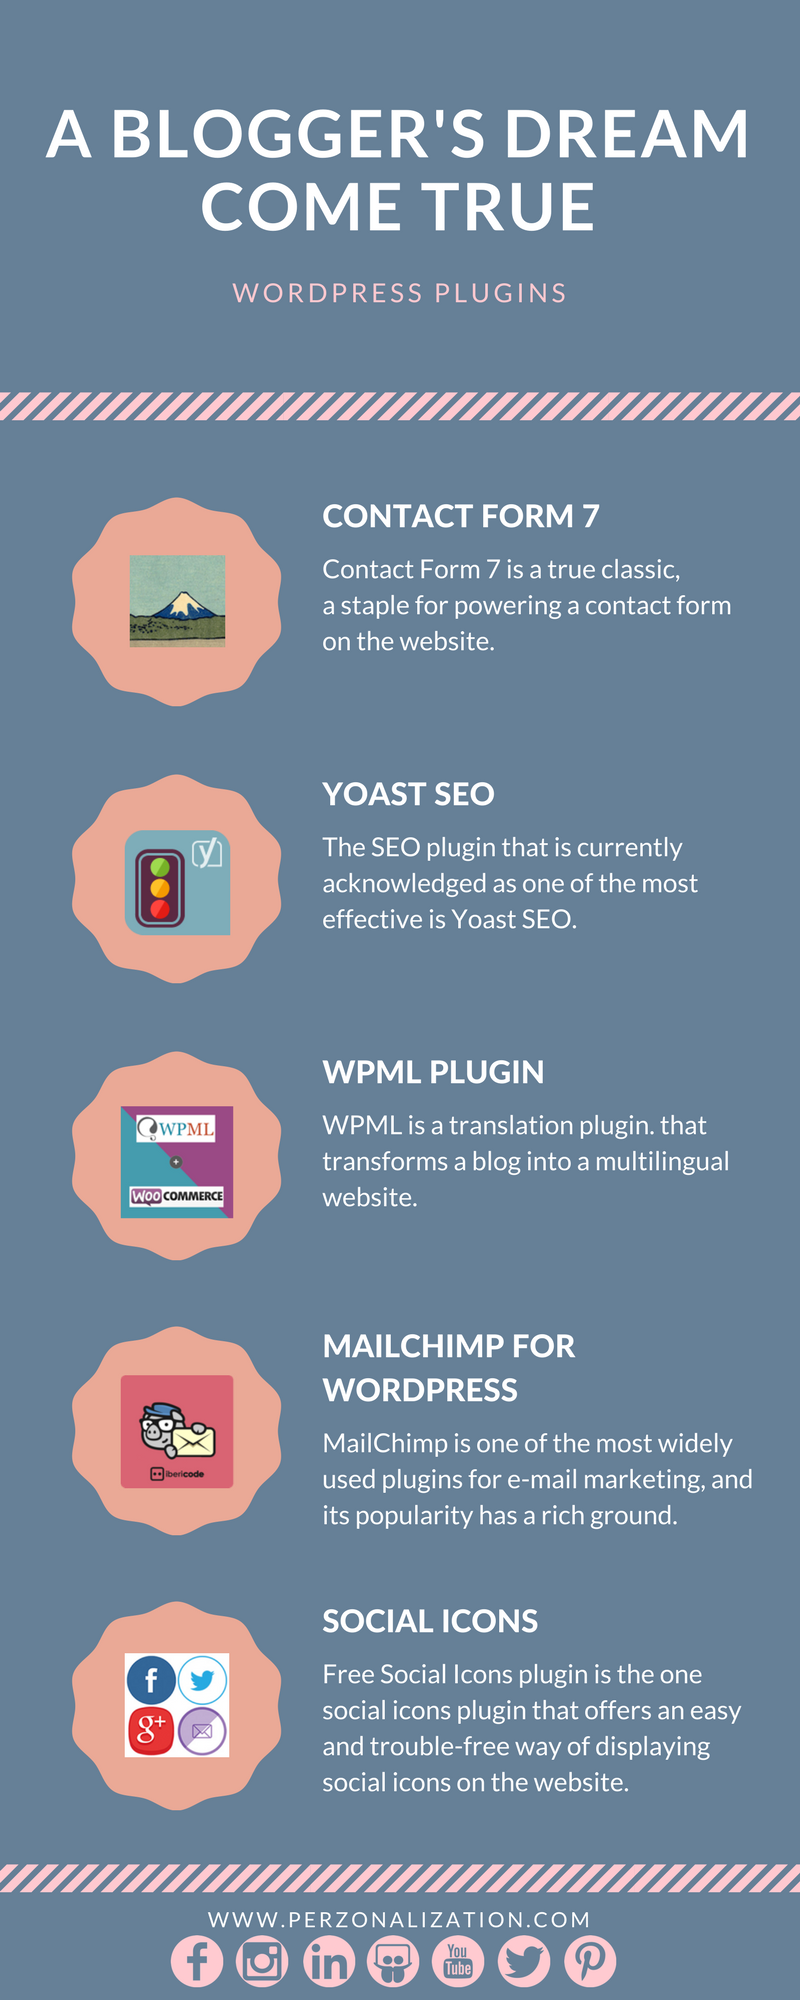 A Blogger's Dream Come True - Infographic Reviews Contact for popular Wordpress plugins; Form 7, Yoast SEO, Mailchimp, Social Icons and WPML.